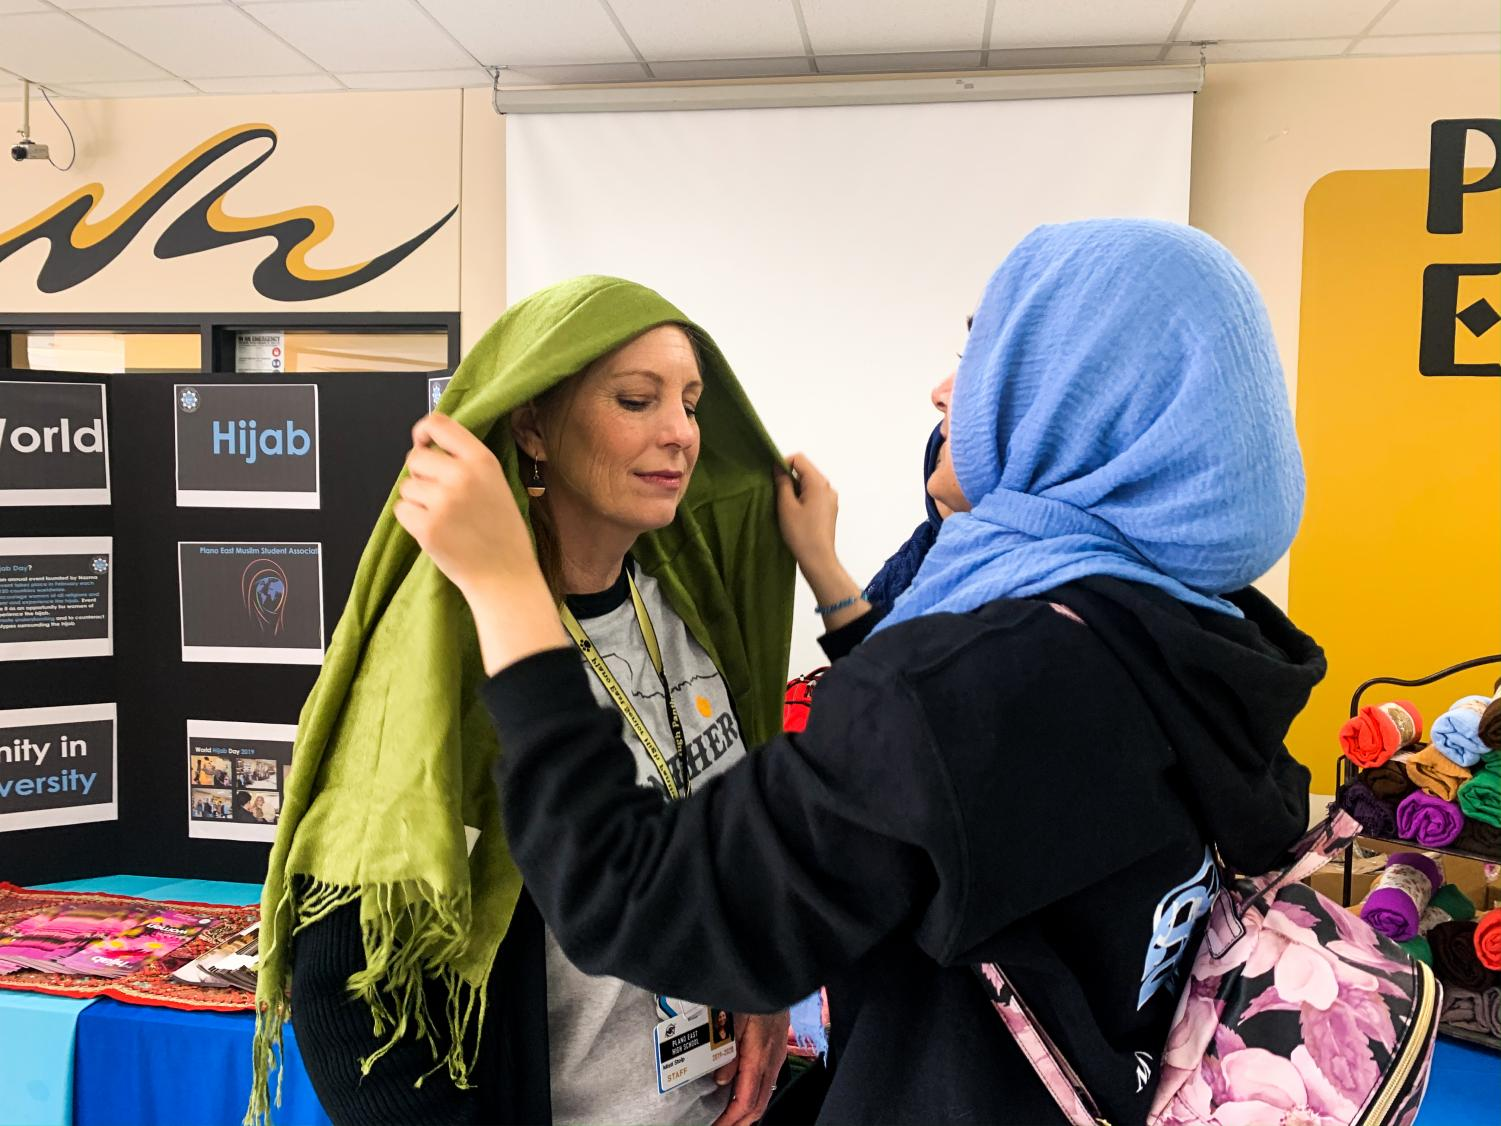 Freshman+Mehreen+Syed+helps+assistant+special+education+teacher+Misti+Stolp+wear+a+headscarf.+Syed+was+one+of+many+students+volunteering+at+the+World+Hijab+Day+table.+%E2%80%9CThe+hijab+is+a+beautiful+symbol+of+freedom+and+diversity%2C%E2%80%9D+Syed+said.+%E2%80%9CWorld+Hijab+Day+celebrates+empowerment+and+unity%2C+and+as+a+high+school+Muslim+student%2C+I+loved+being+a+part+of+it.%E2%80%9D